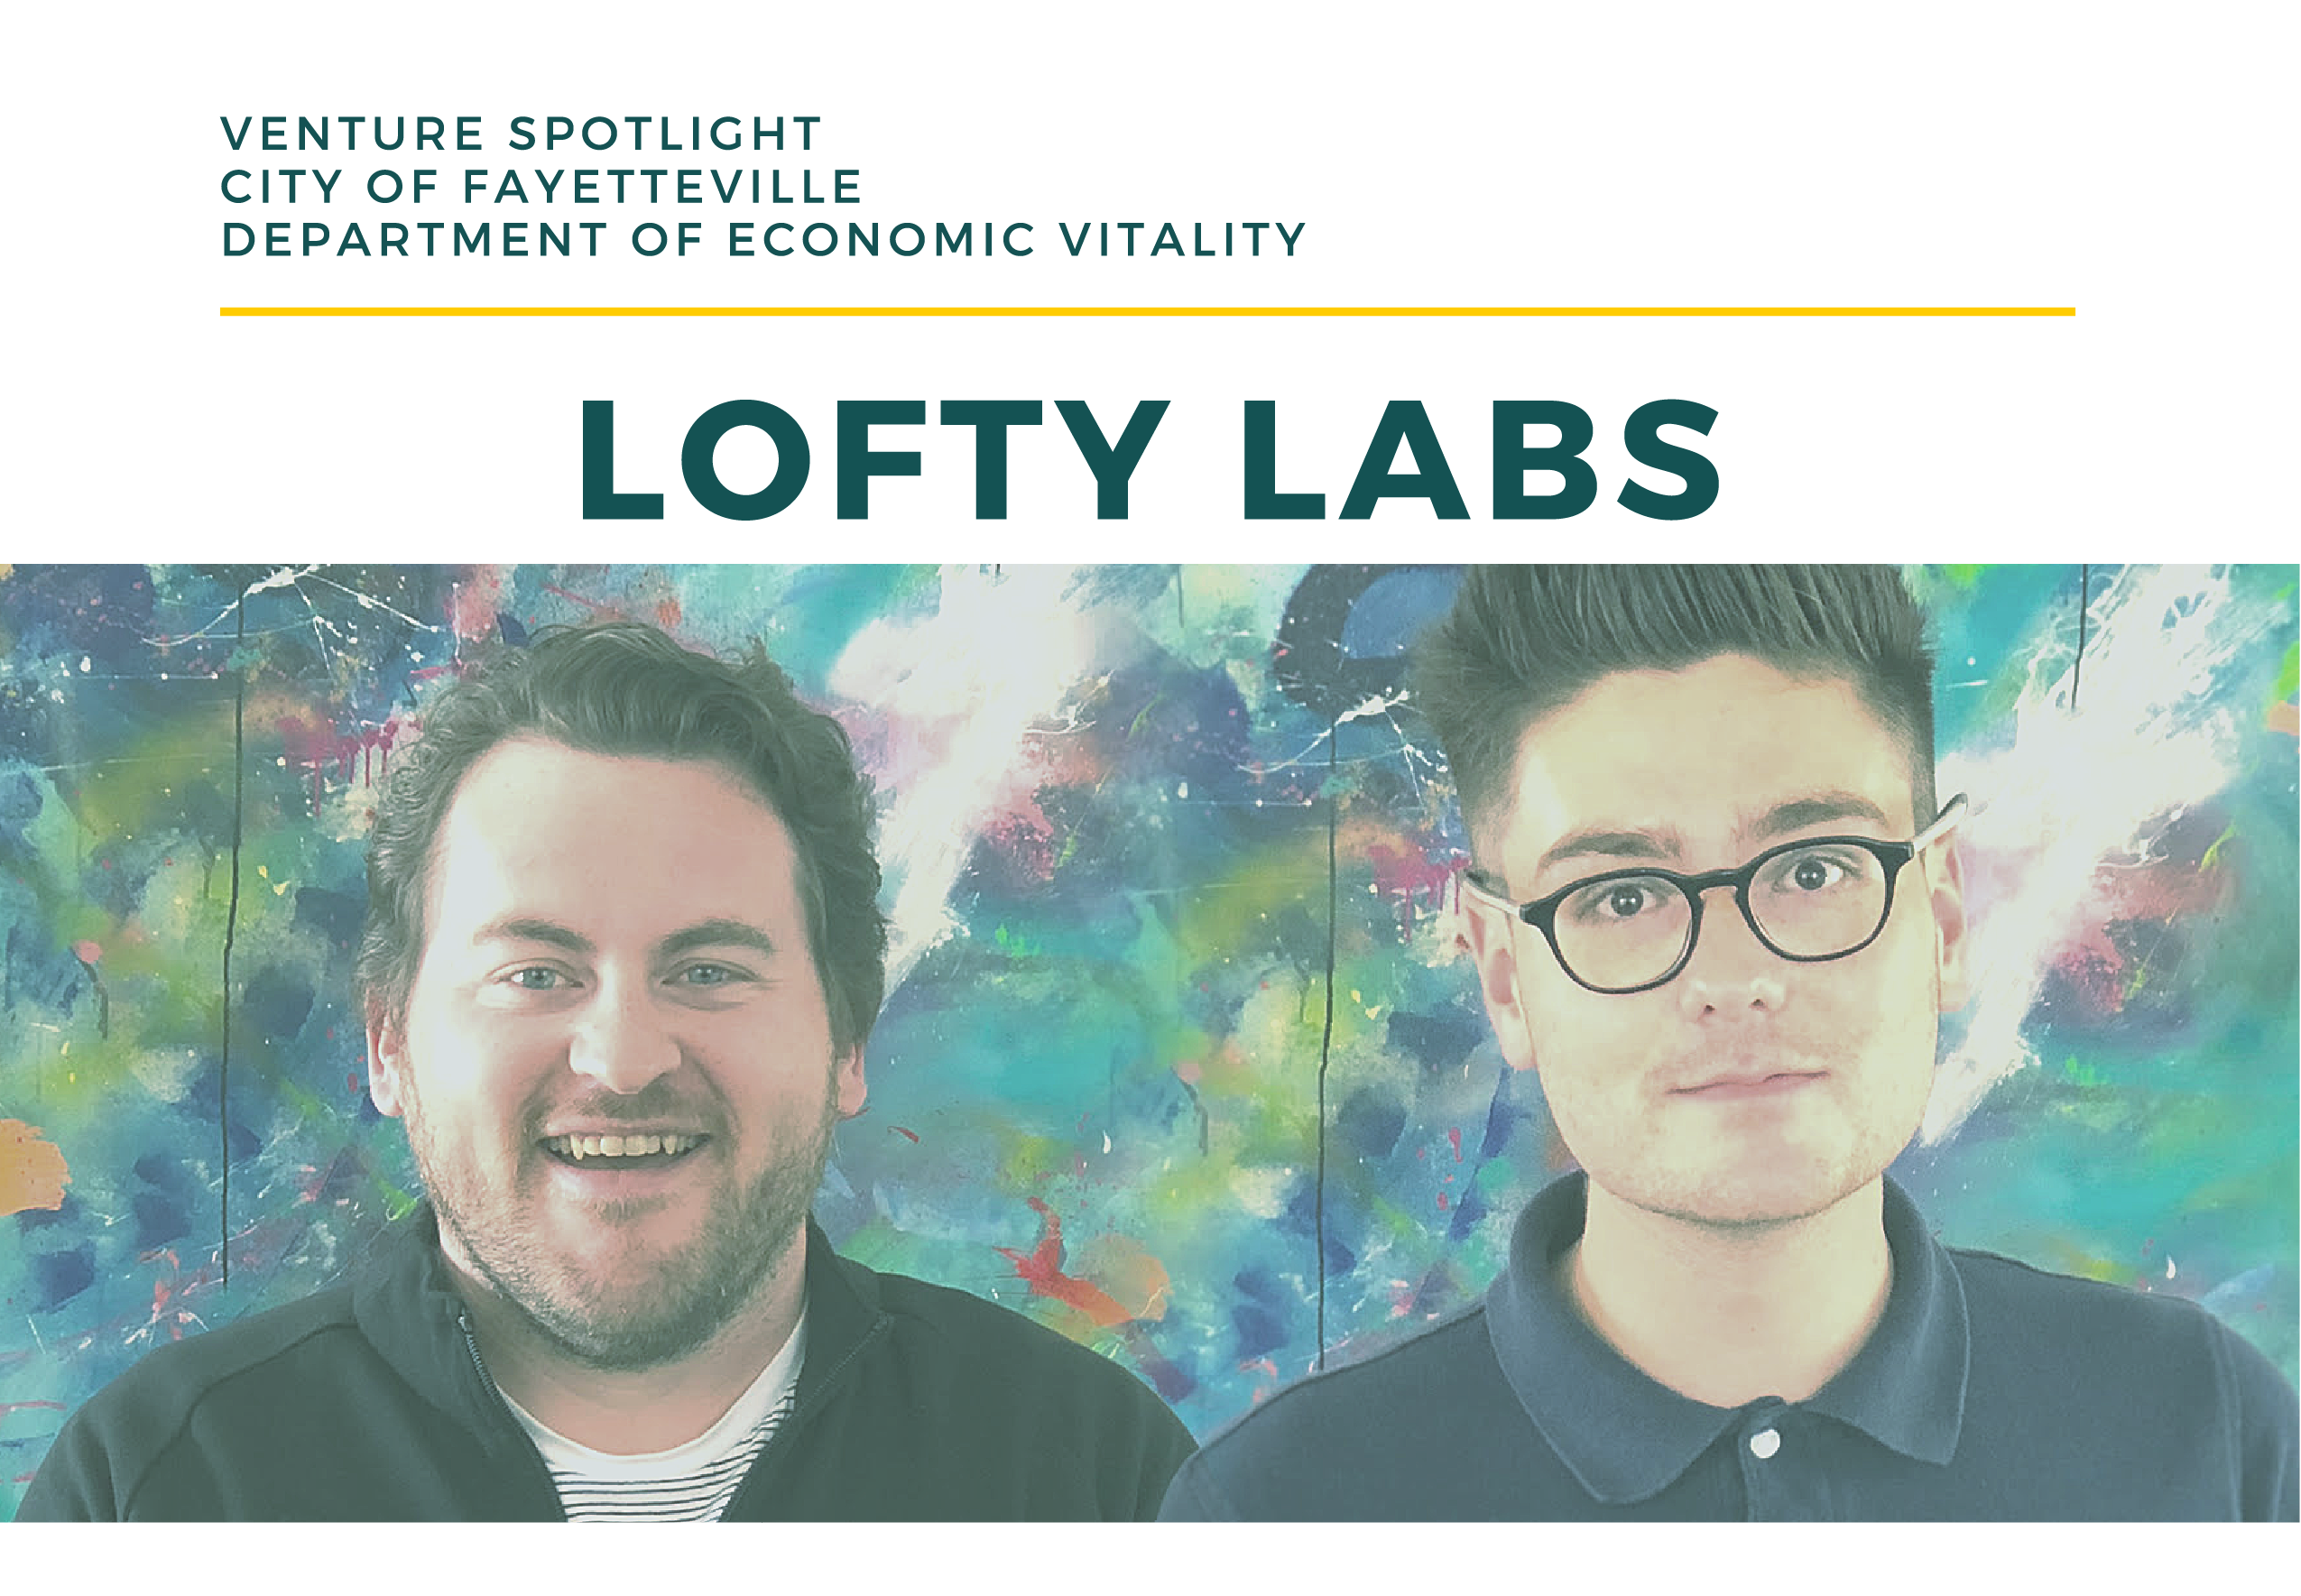 Fayetteville Office of Economic Vitality Venture Spotlight:  Lofty Labs